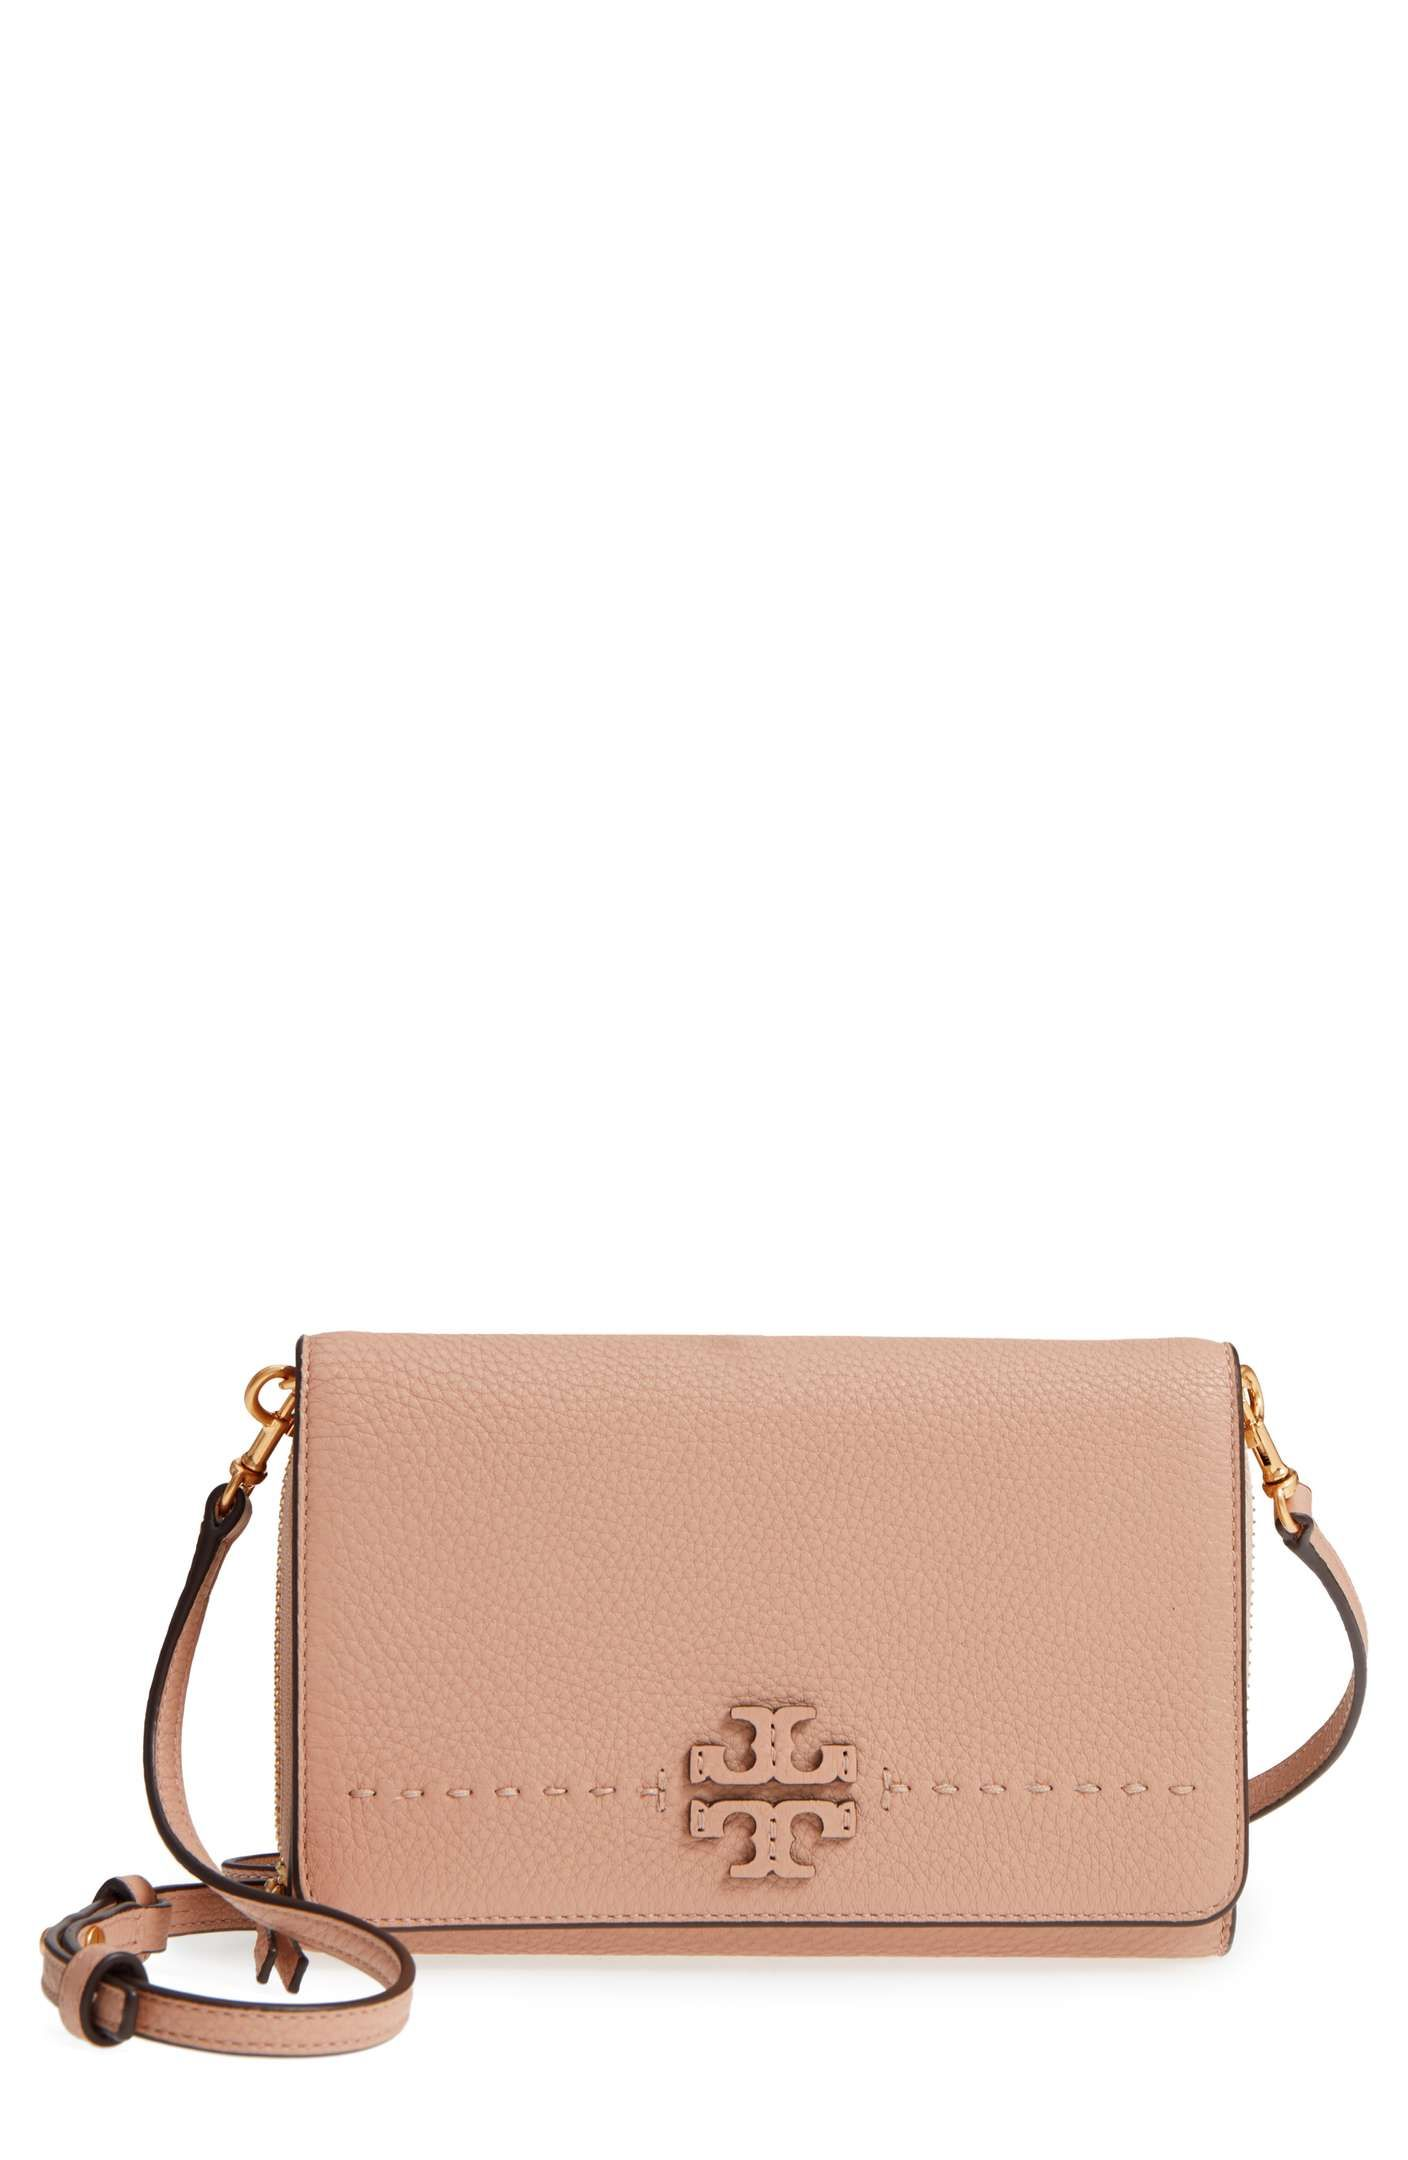 06aeade3ad5 Main Image - Tory Burch McGraw Leather Crossbody Wallet